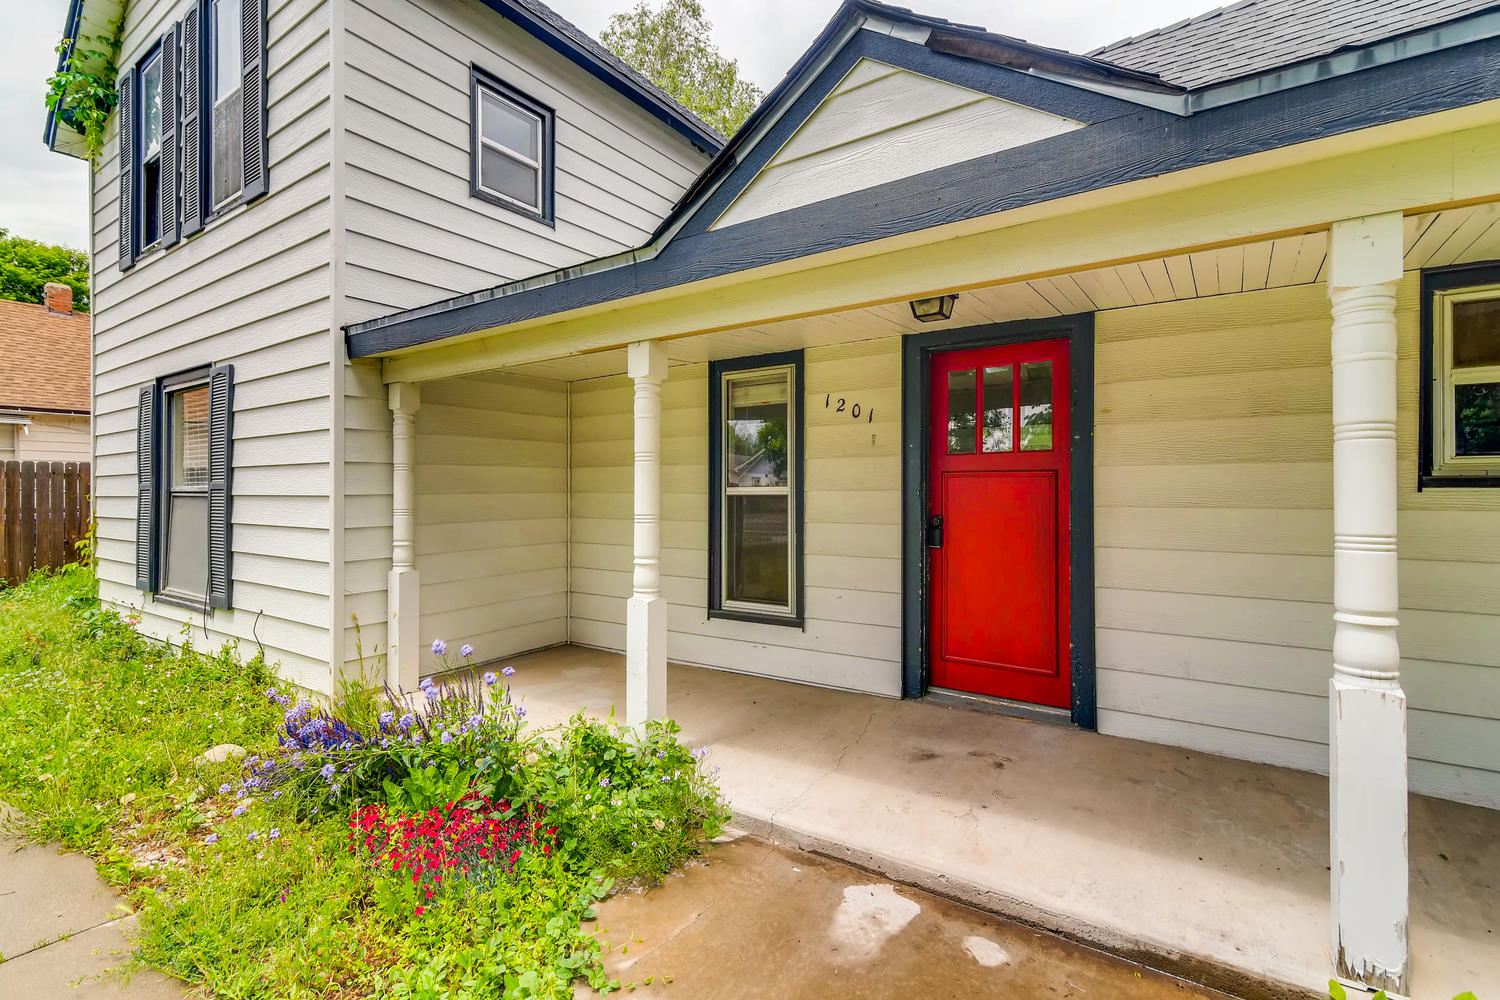 REAL ESTATE LISTING: 1201 E 1st Street Loveland CO Covered Front Porch